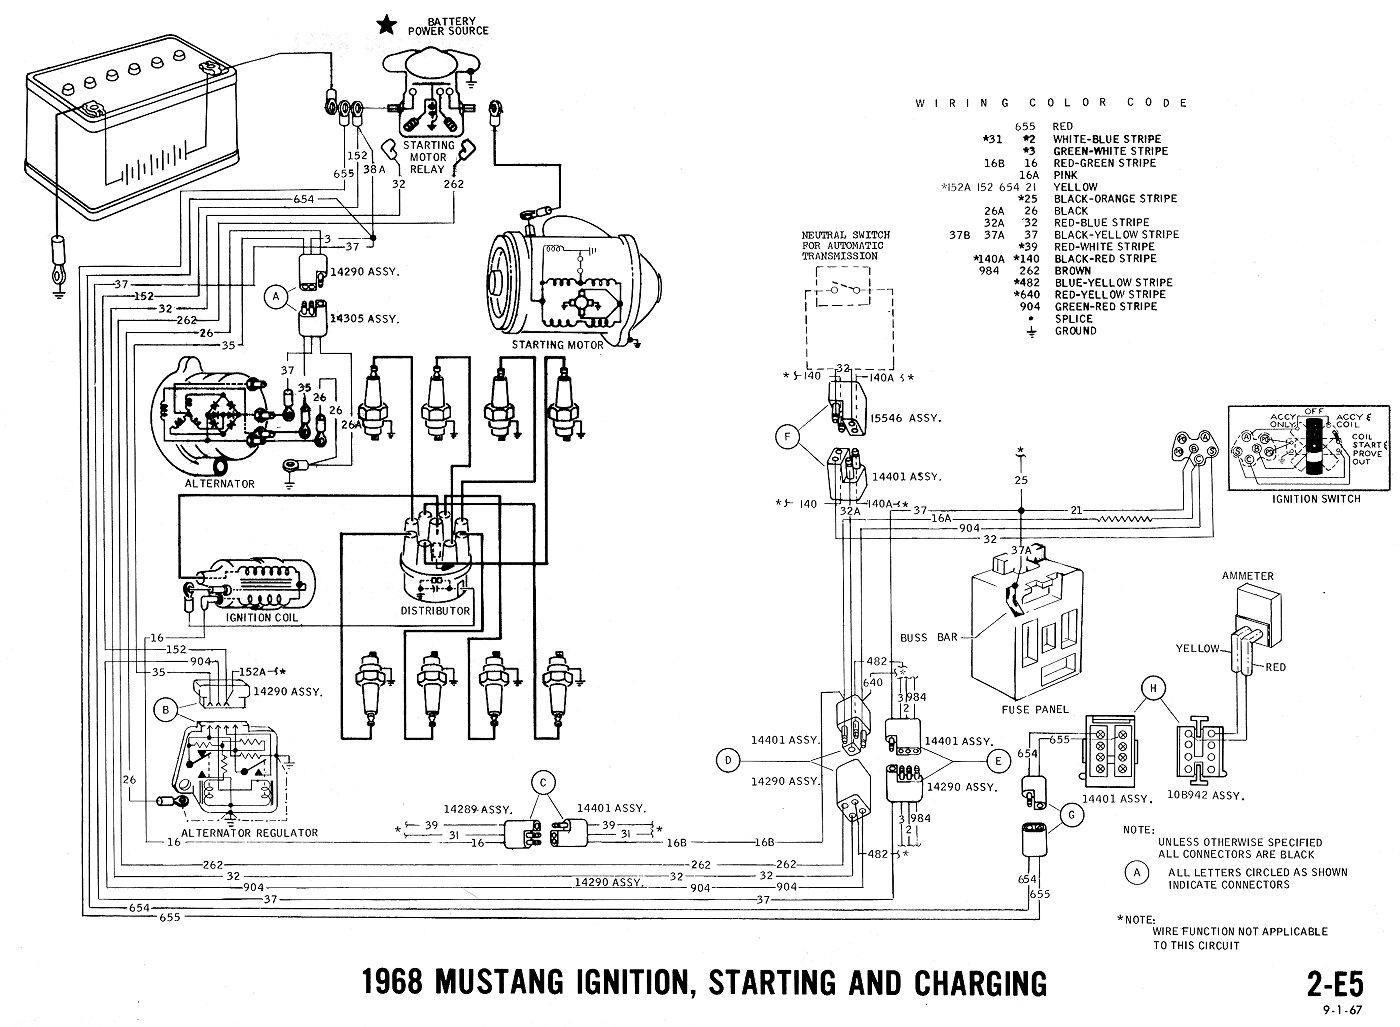 1968 mustang wiring diagrams evolving software 1968 mustang wiring diagrams evolving